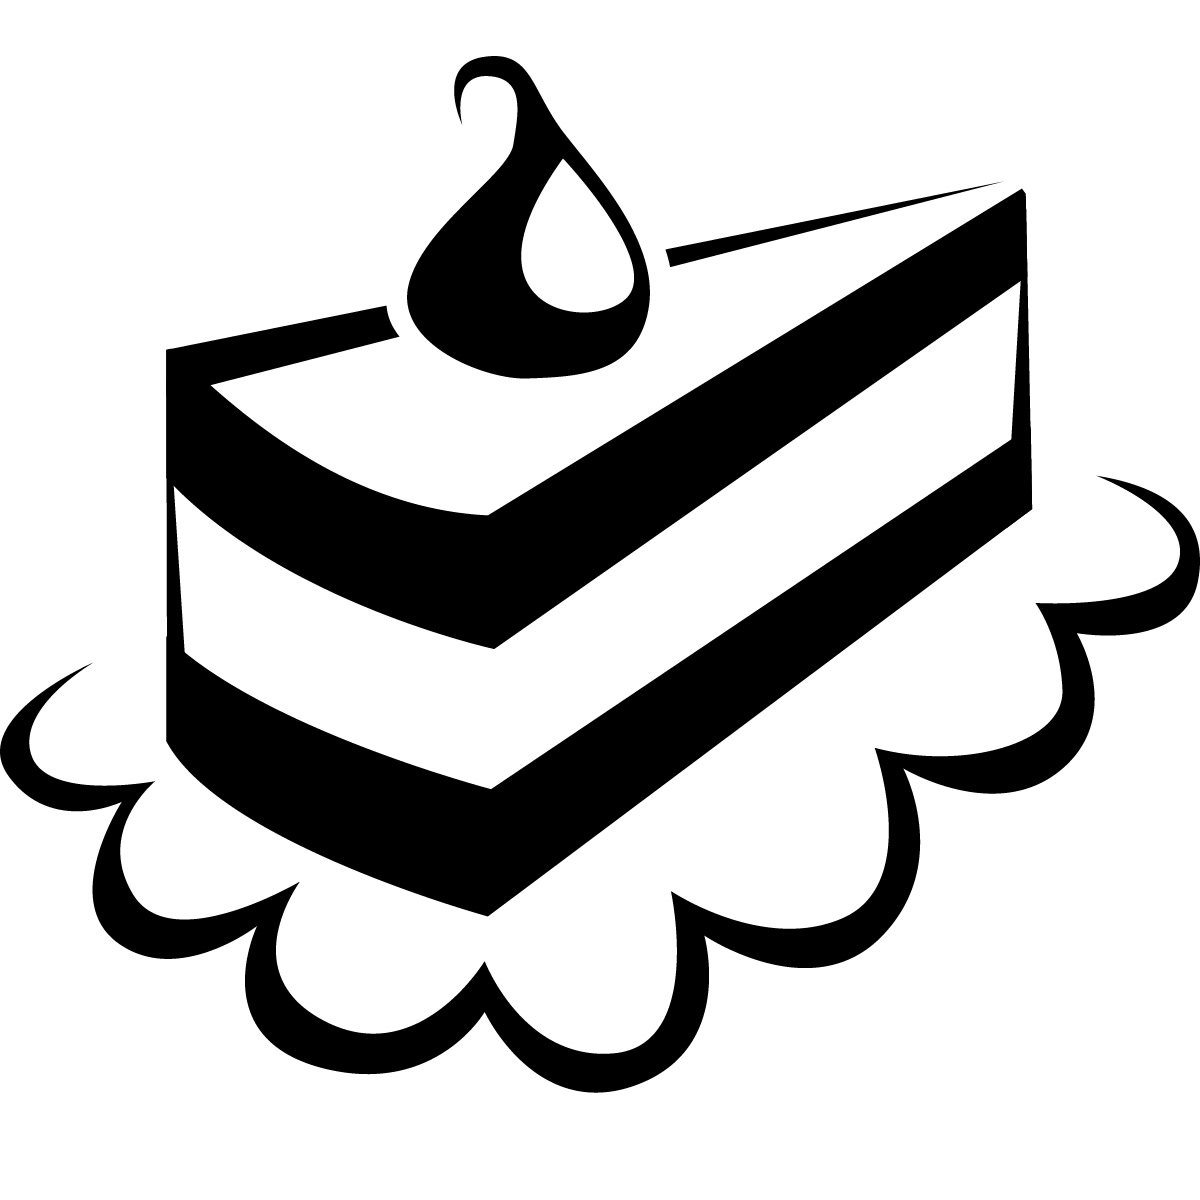 Cake Black And White Free To Use And Share Cake Clipart For Your Website Clipartdeck